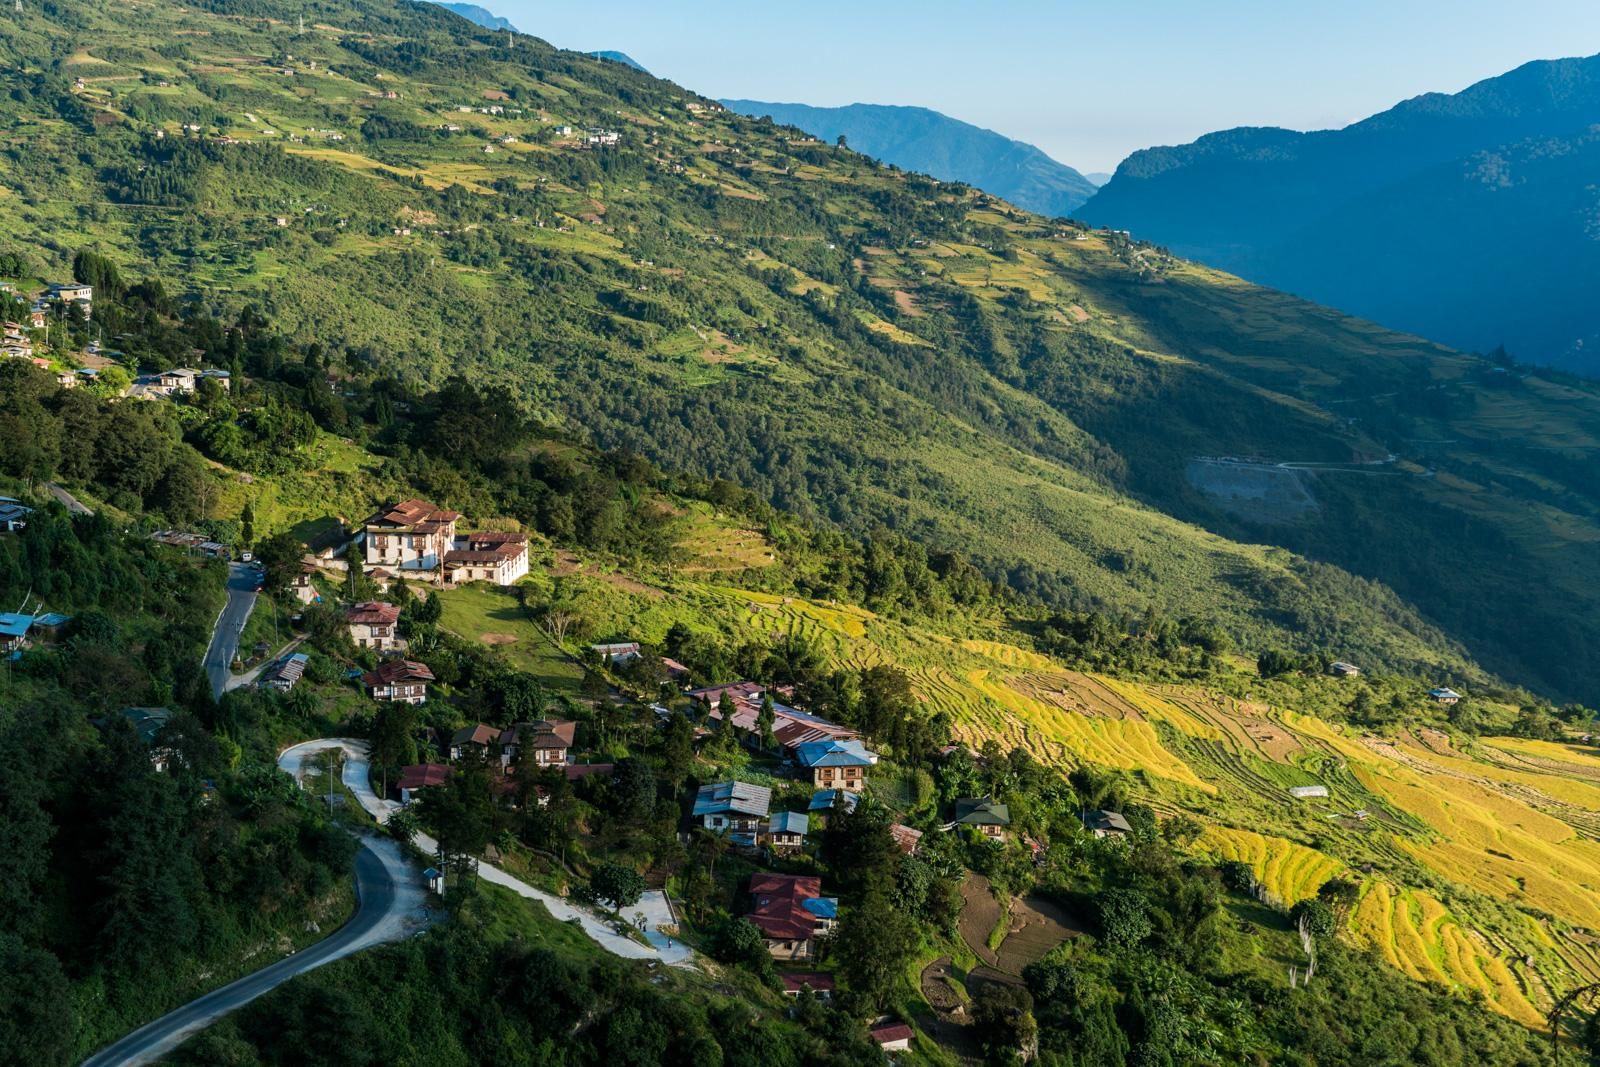 Case in point: we weren't supposed to stop here, but after seeing this view of  Kuengarabten, Bhutan , I knew I needed to spend at least one night here. So we did!